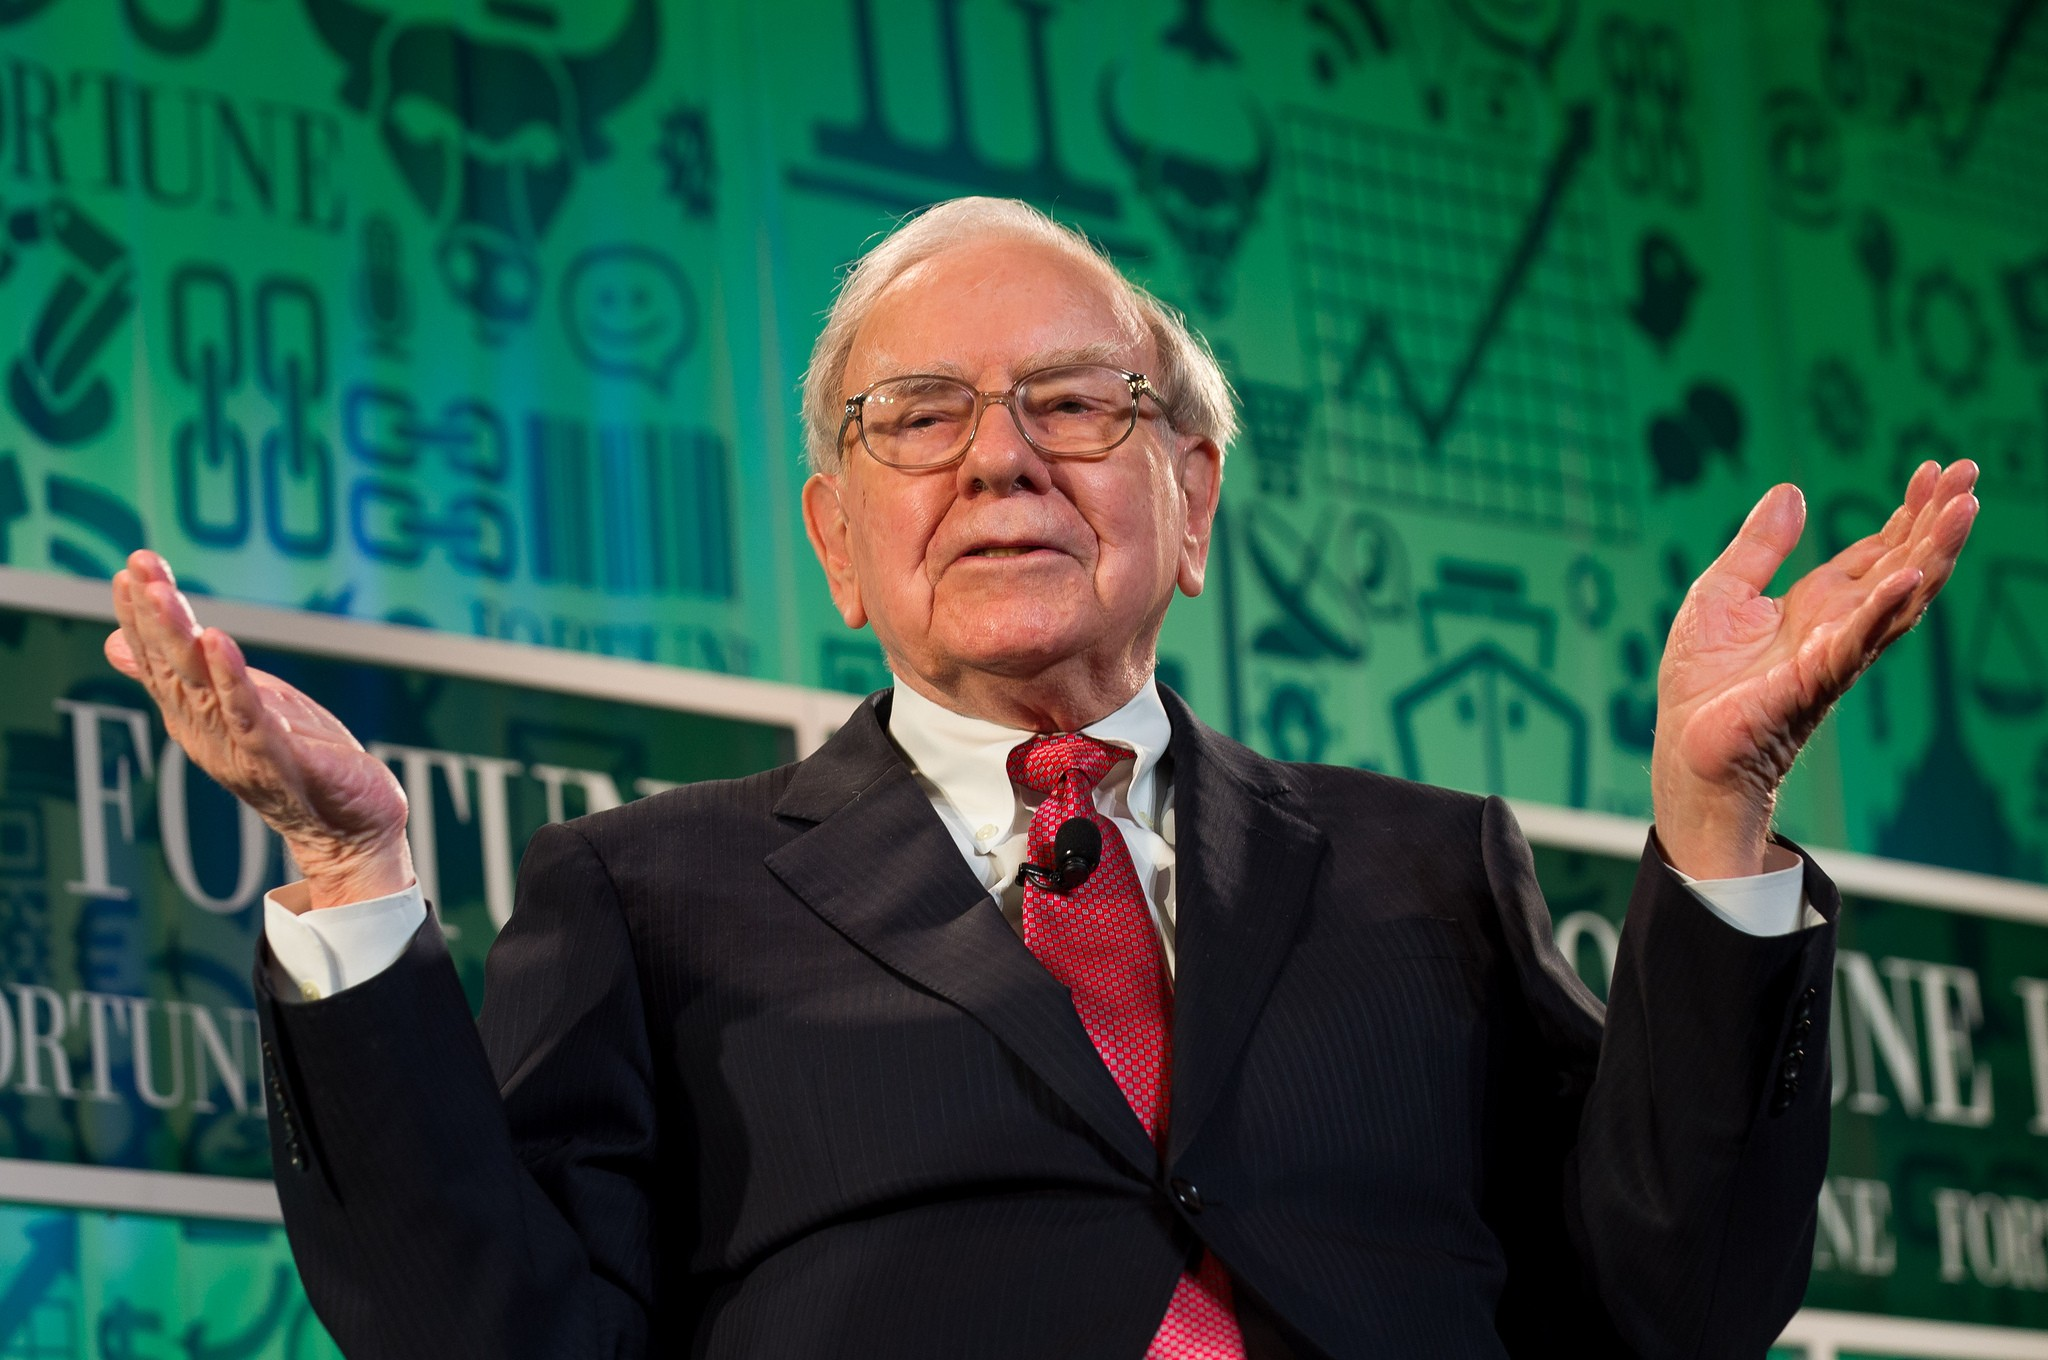 warren-buffet-quotes-investing-success.jpg